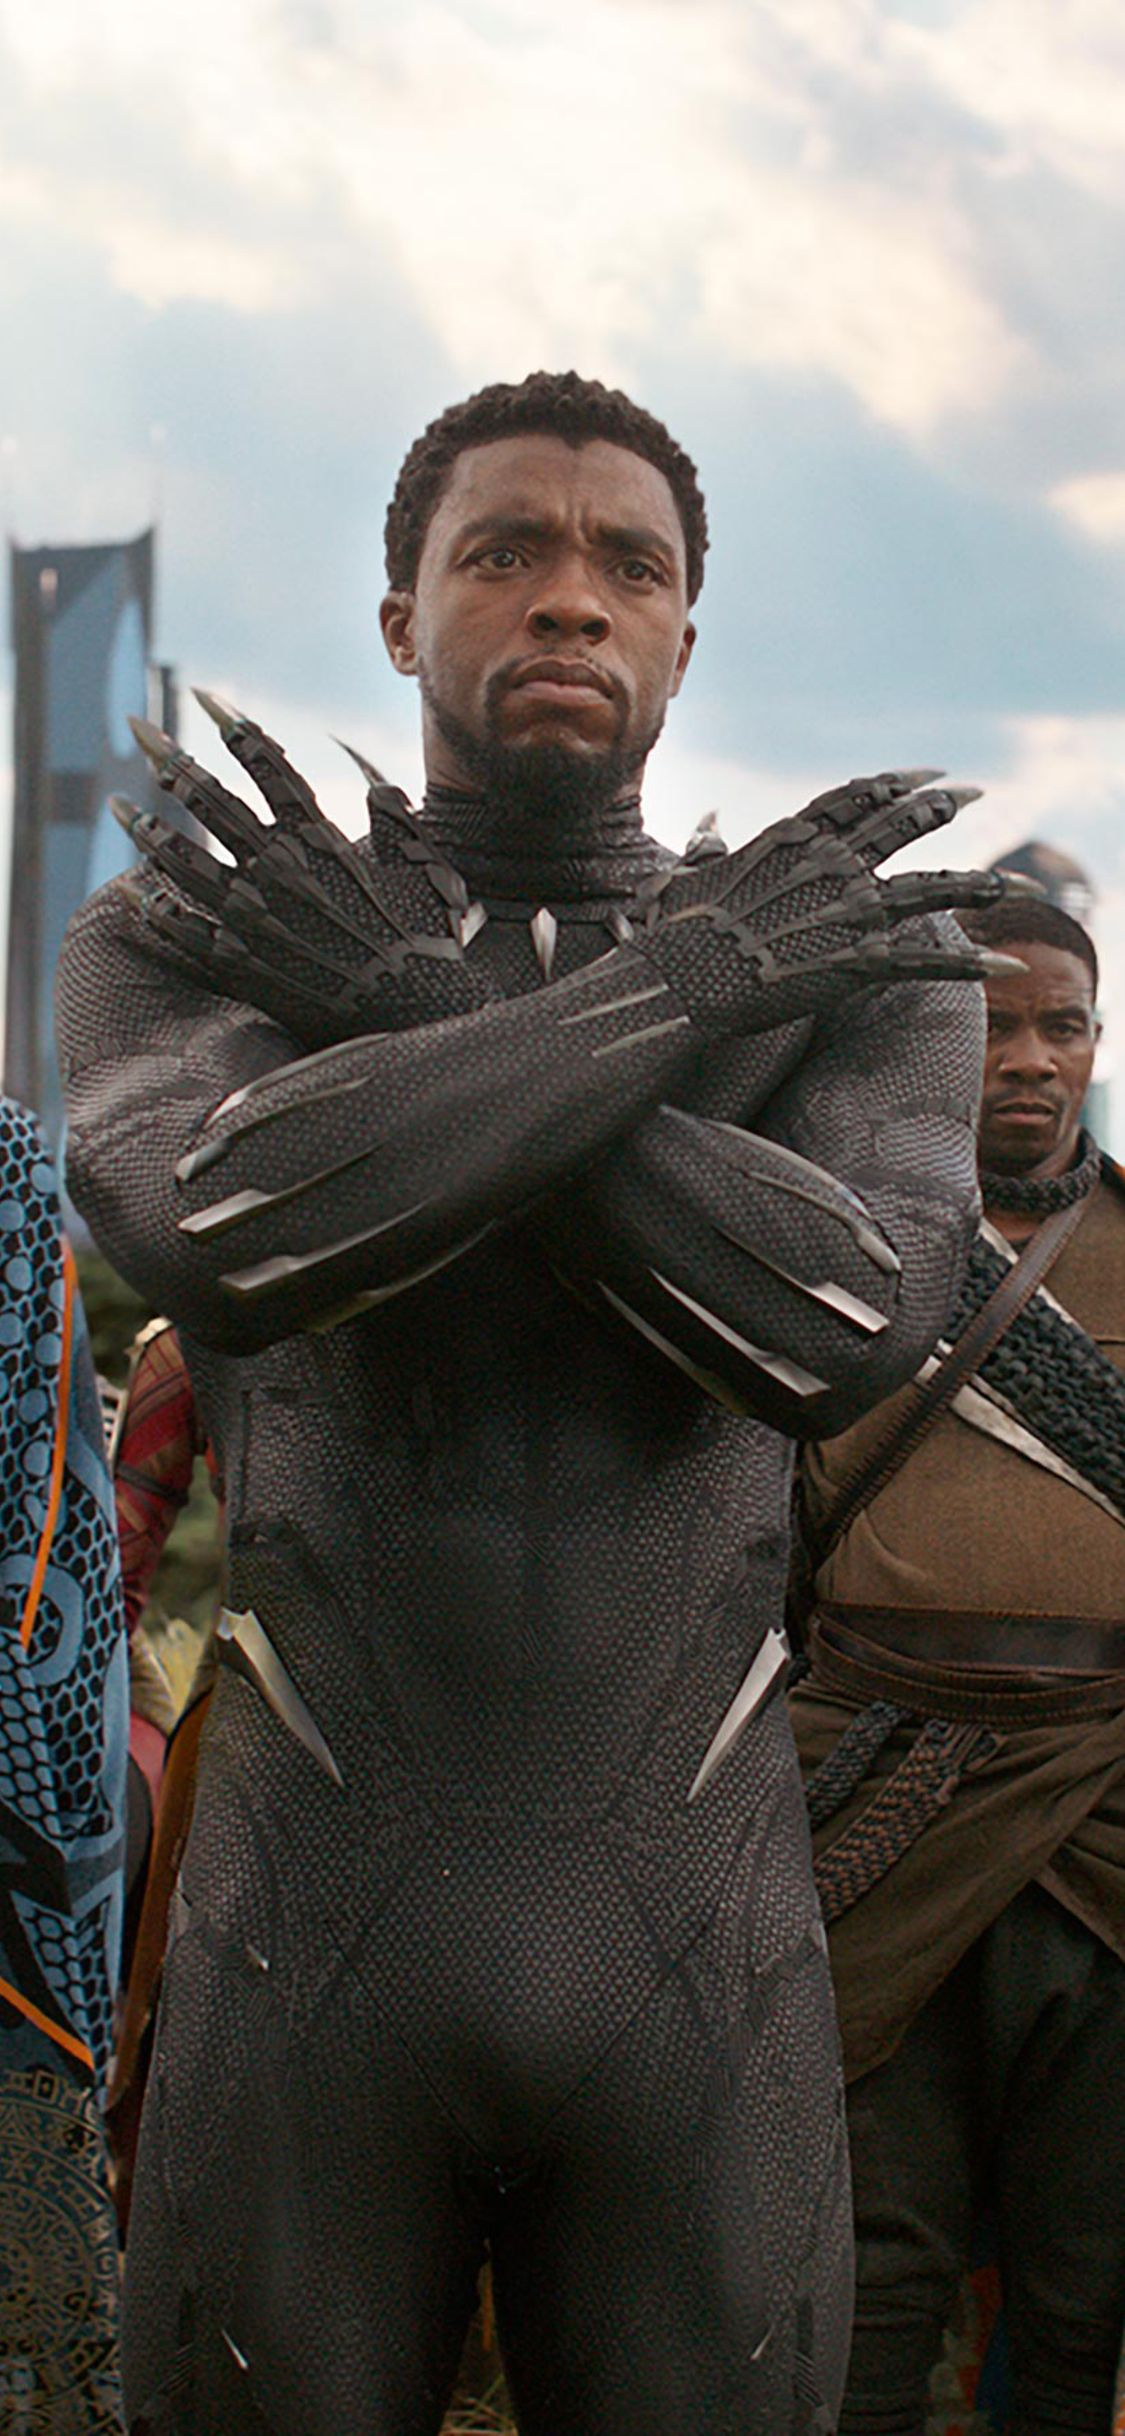 1125x2436 Black Panther In Avengers Infinity War 2018 Iphone Xs Iphone 10 Iphone X Hd 4k Wallpapers Images Backgro Black Panther Marvel Black Panther Panther